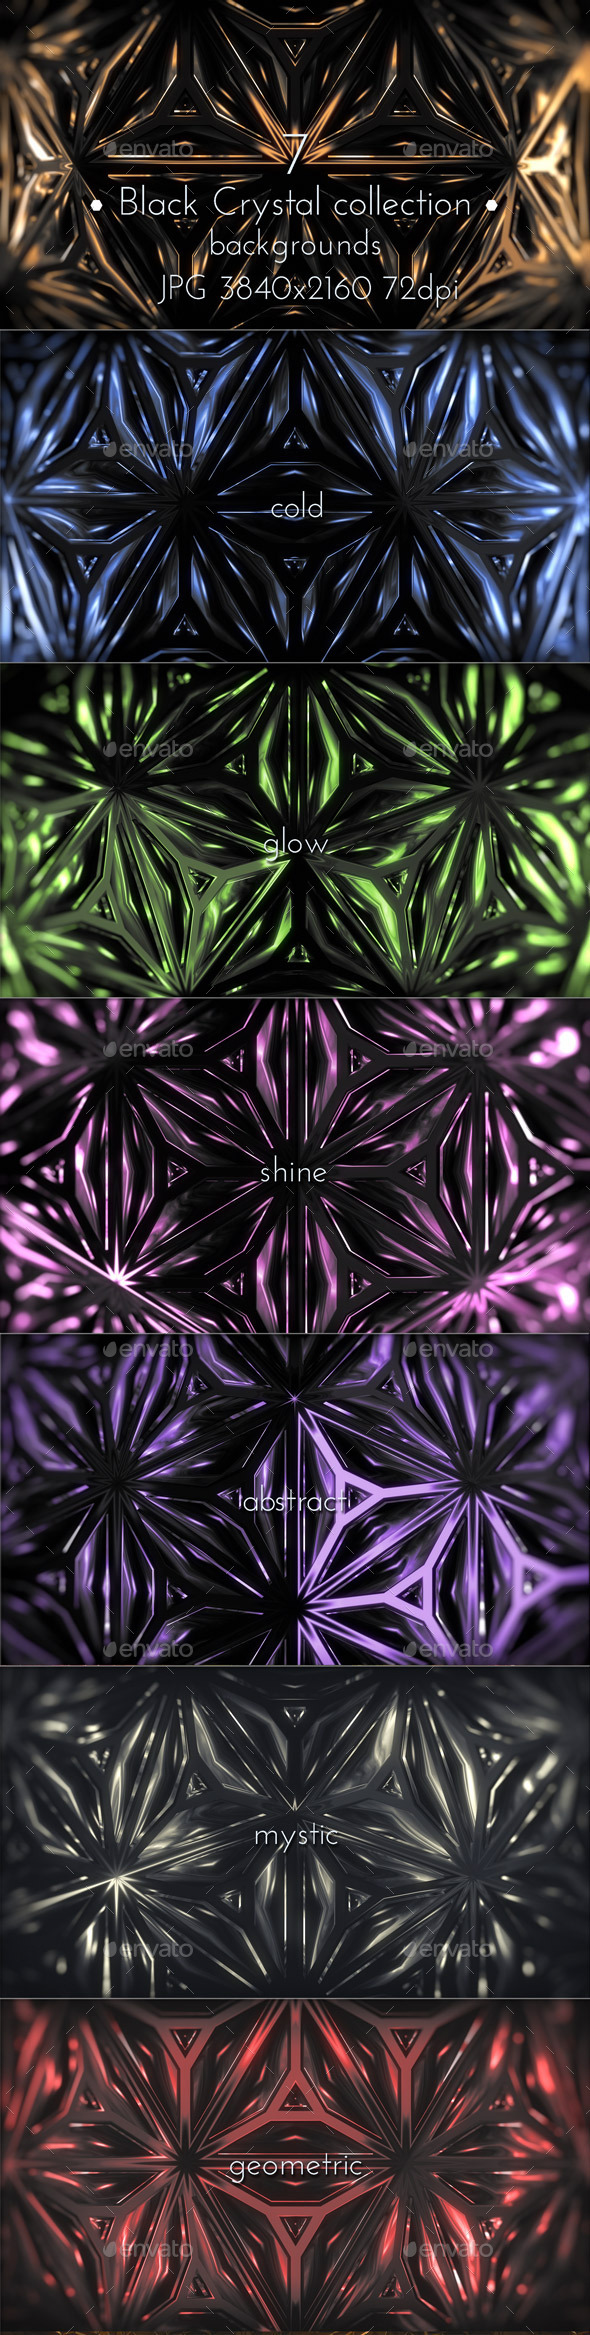 Black Crystal Background - Tech / Futuristic Backgrounds